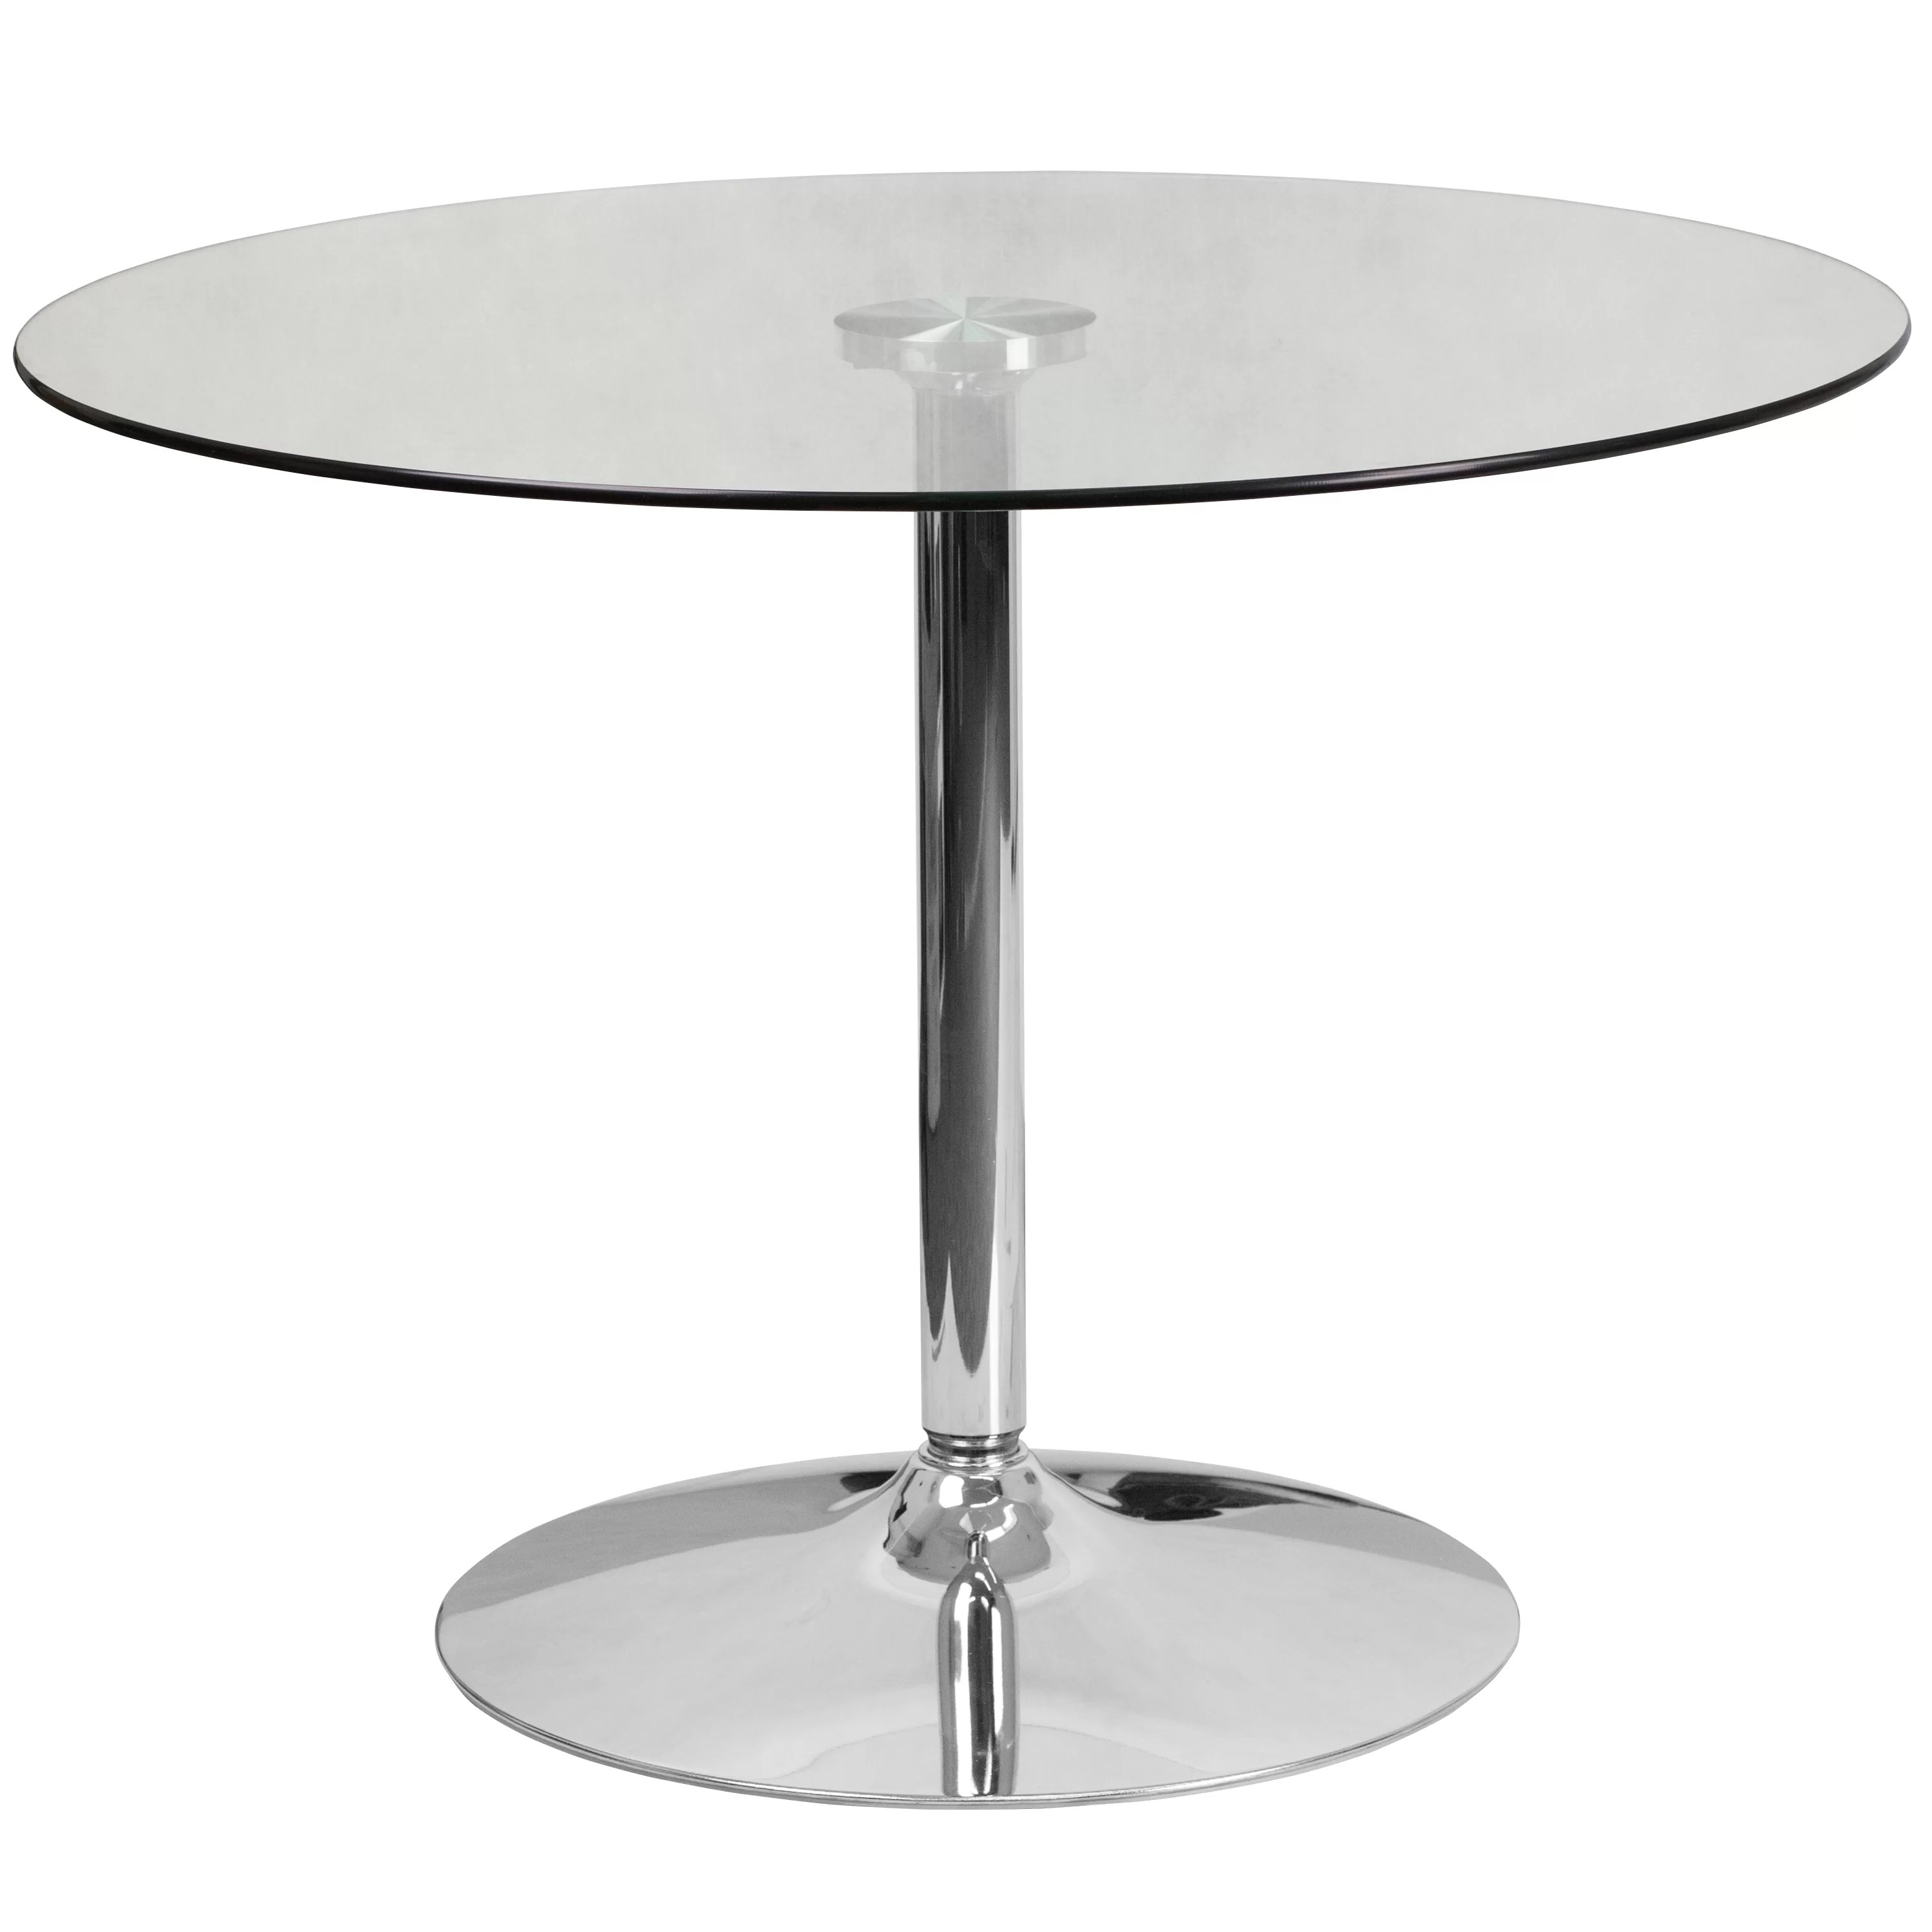 Modern Round Glass Dining Table Cavell Round Glass Dining Table